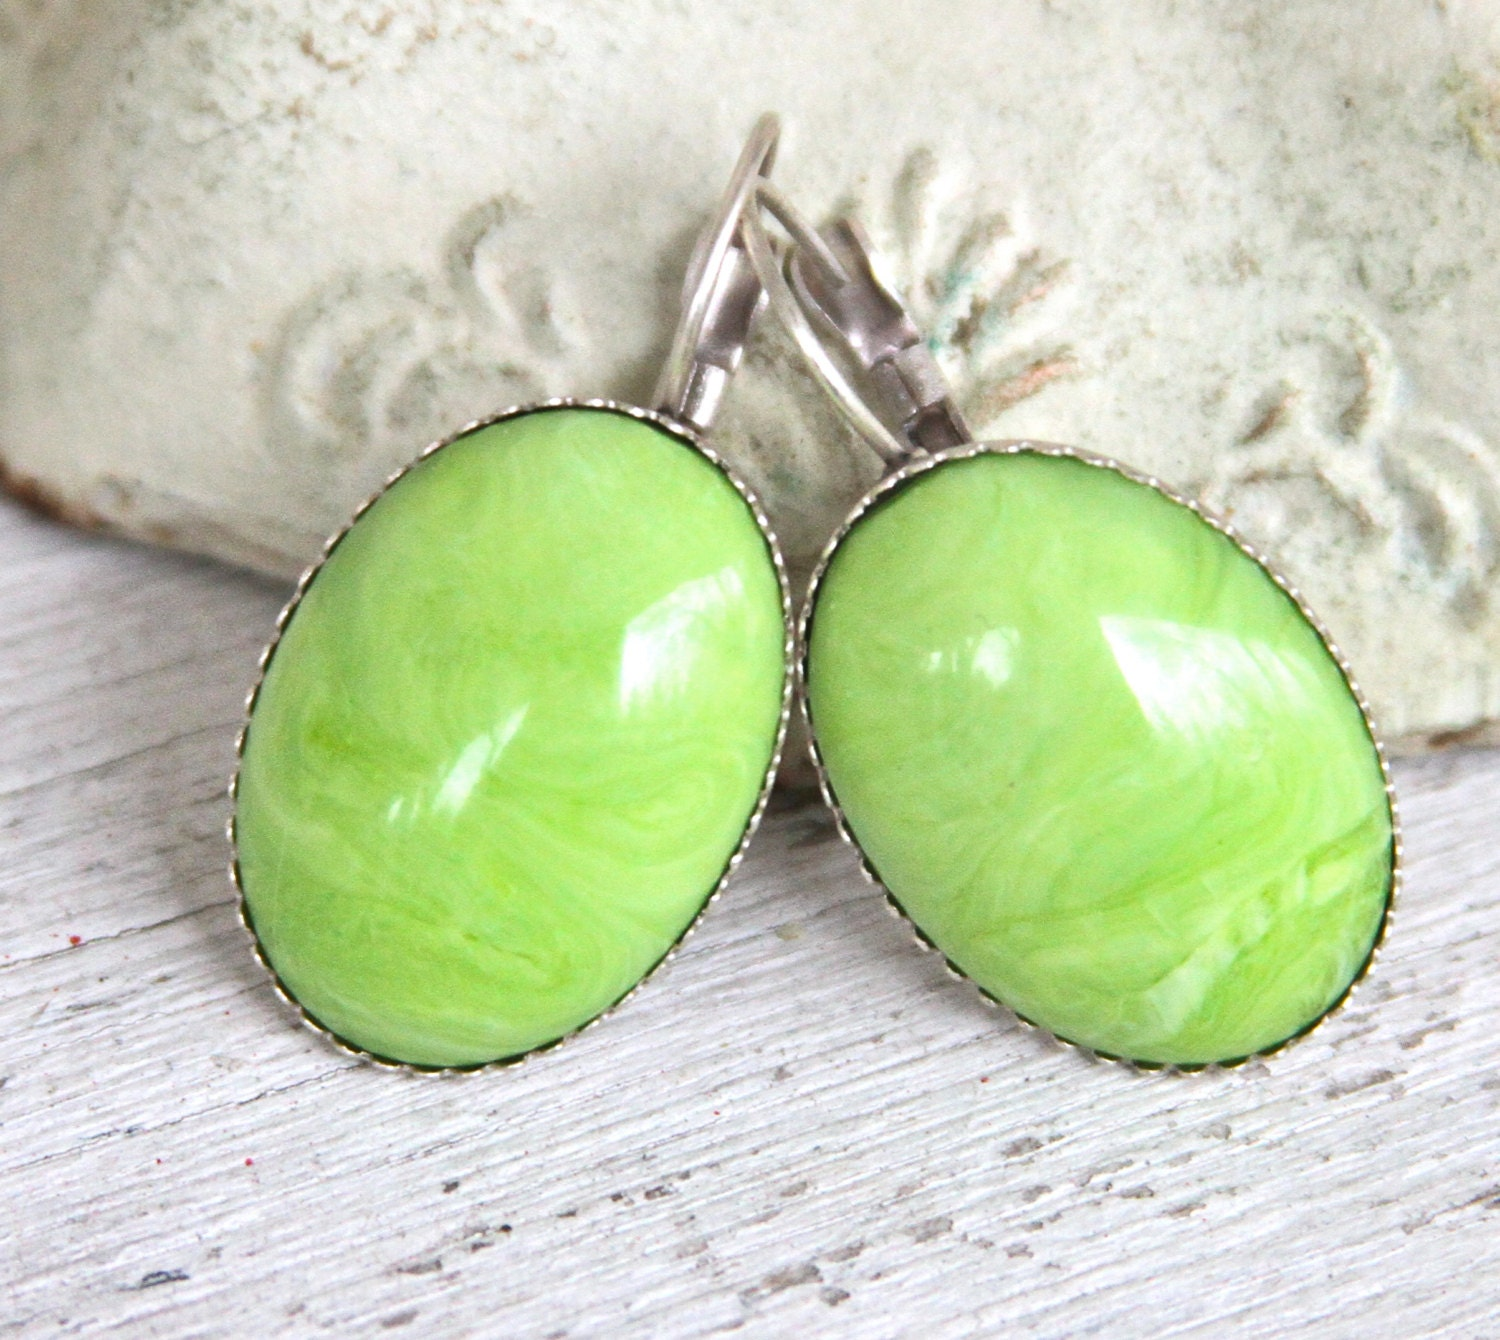 Apple Green Oval Italian Marbled Scalloped Silver Plated Lever Back Drop Dangle Earrings - Beach, Wedding,Bridal - heathernn1